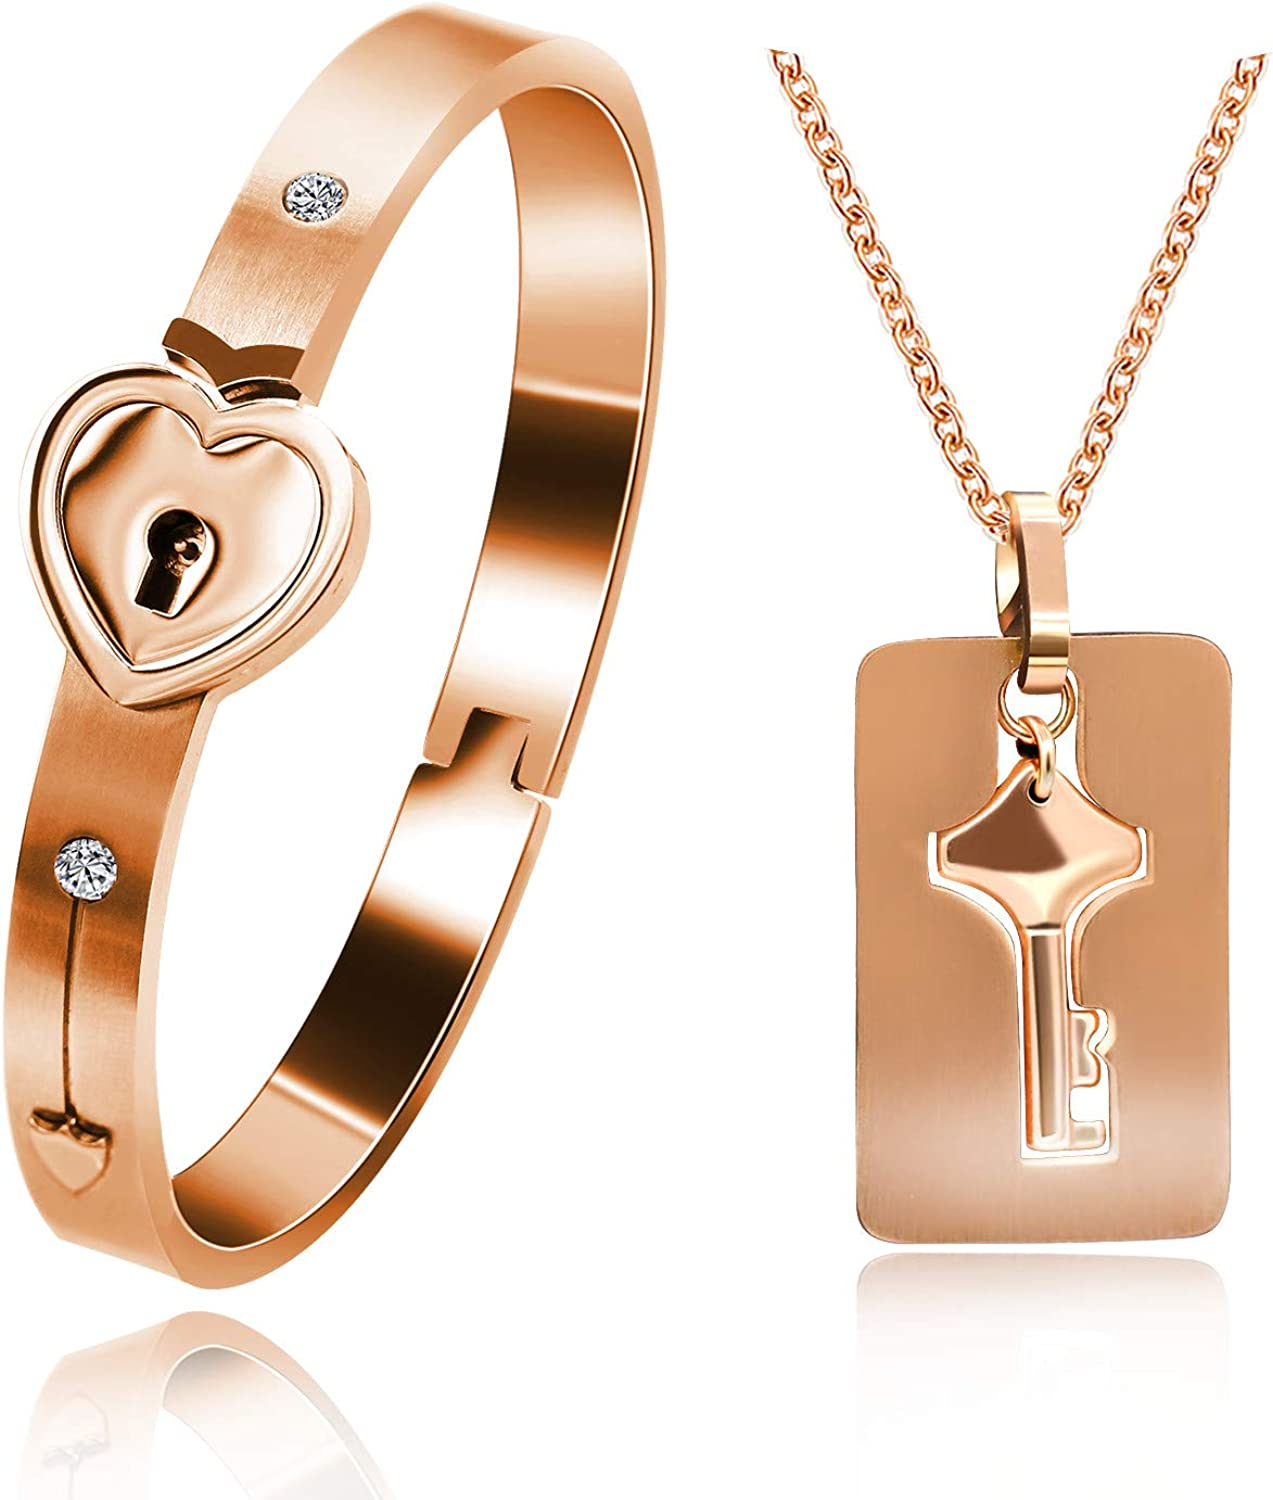 Uloveido Rose Gold Plated Titanium Matching Puzzle Couple Heart Lock Bracelet and Key Pendant Necklace for Men and Women